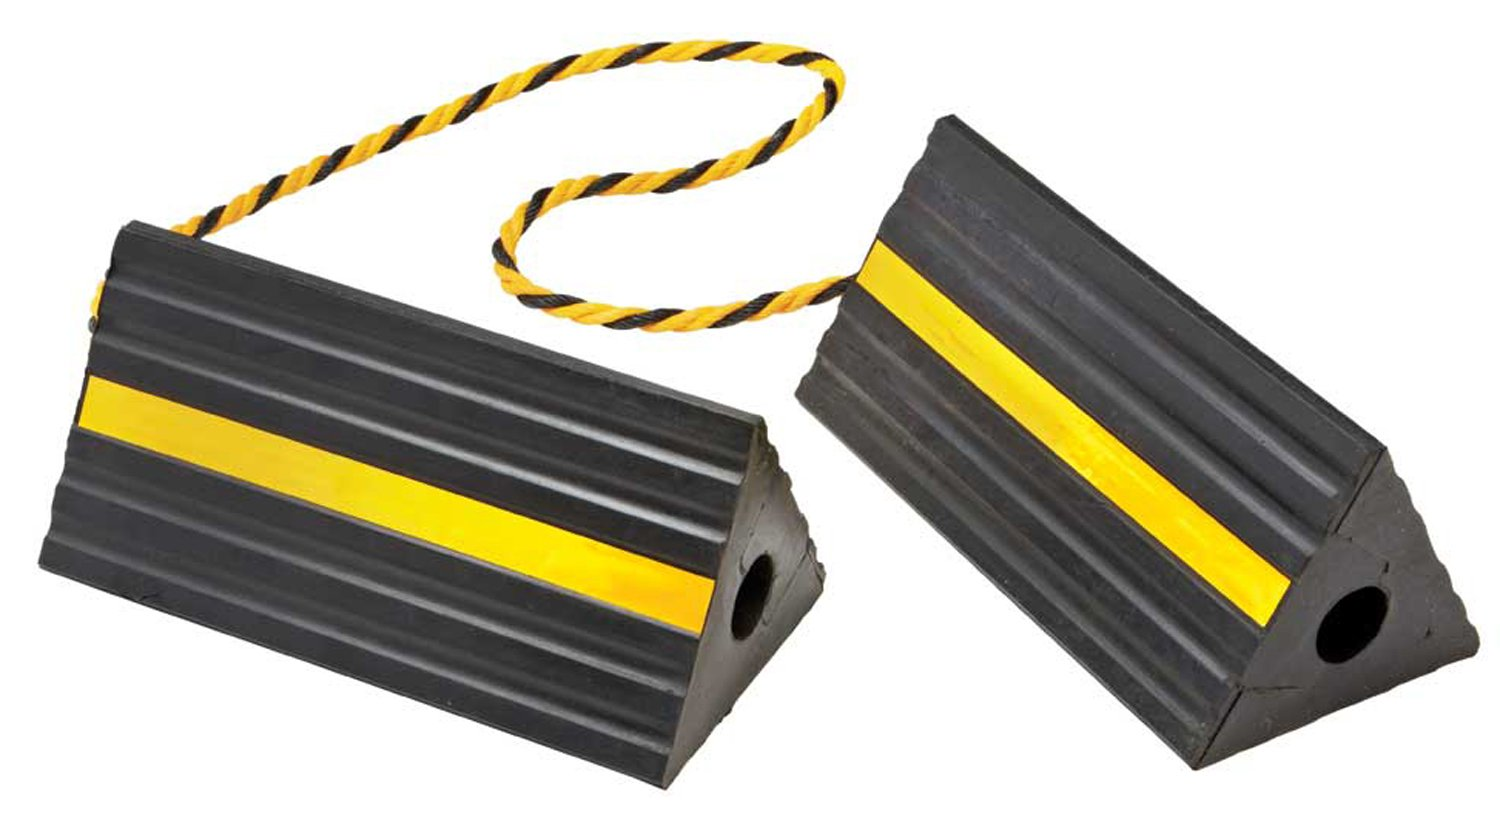 BUNKERWALL Industrial Rubber Wheel Chock Blocks with Rope 9.6'' Wide, 5'' High BW3431